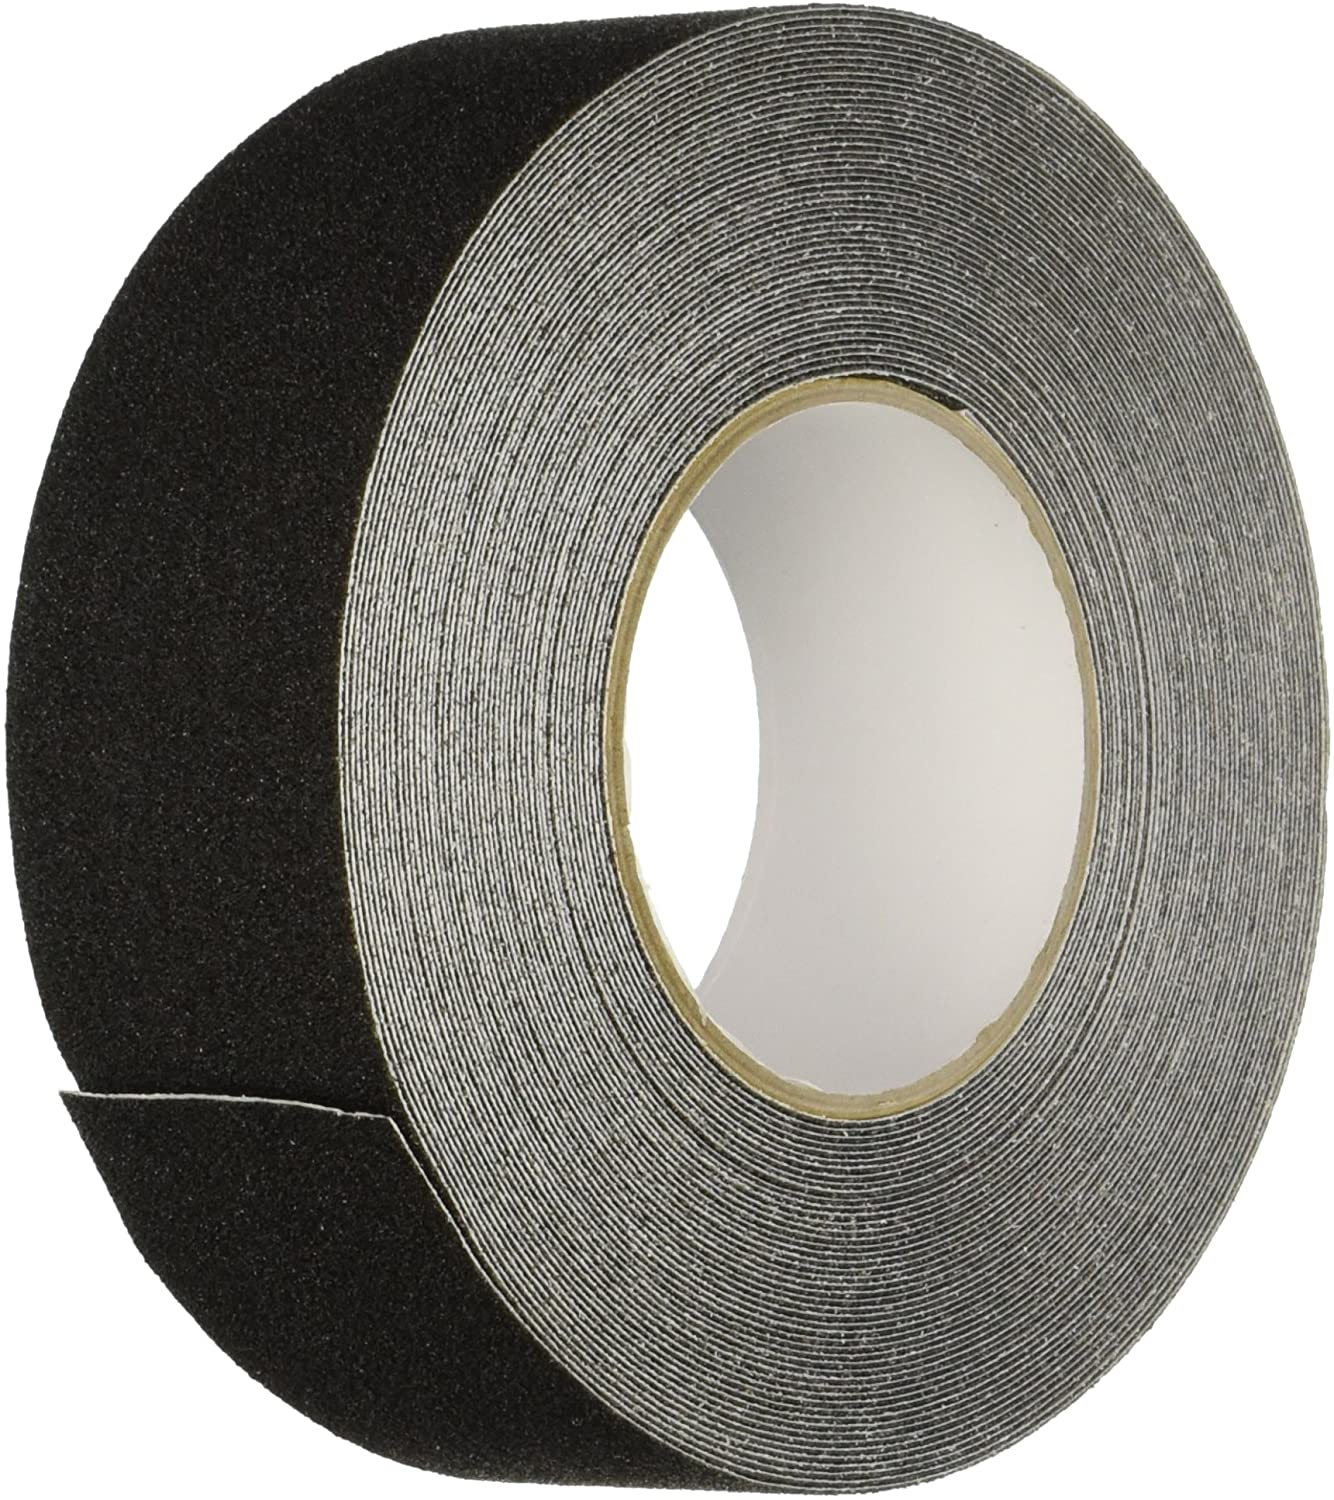 "1"" X 60' Foot Roll Heskins Safety Grip Anti Slip Tape Black NSTS1N - Pkg. of 2"